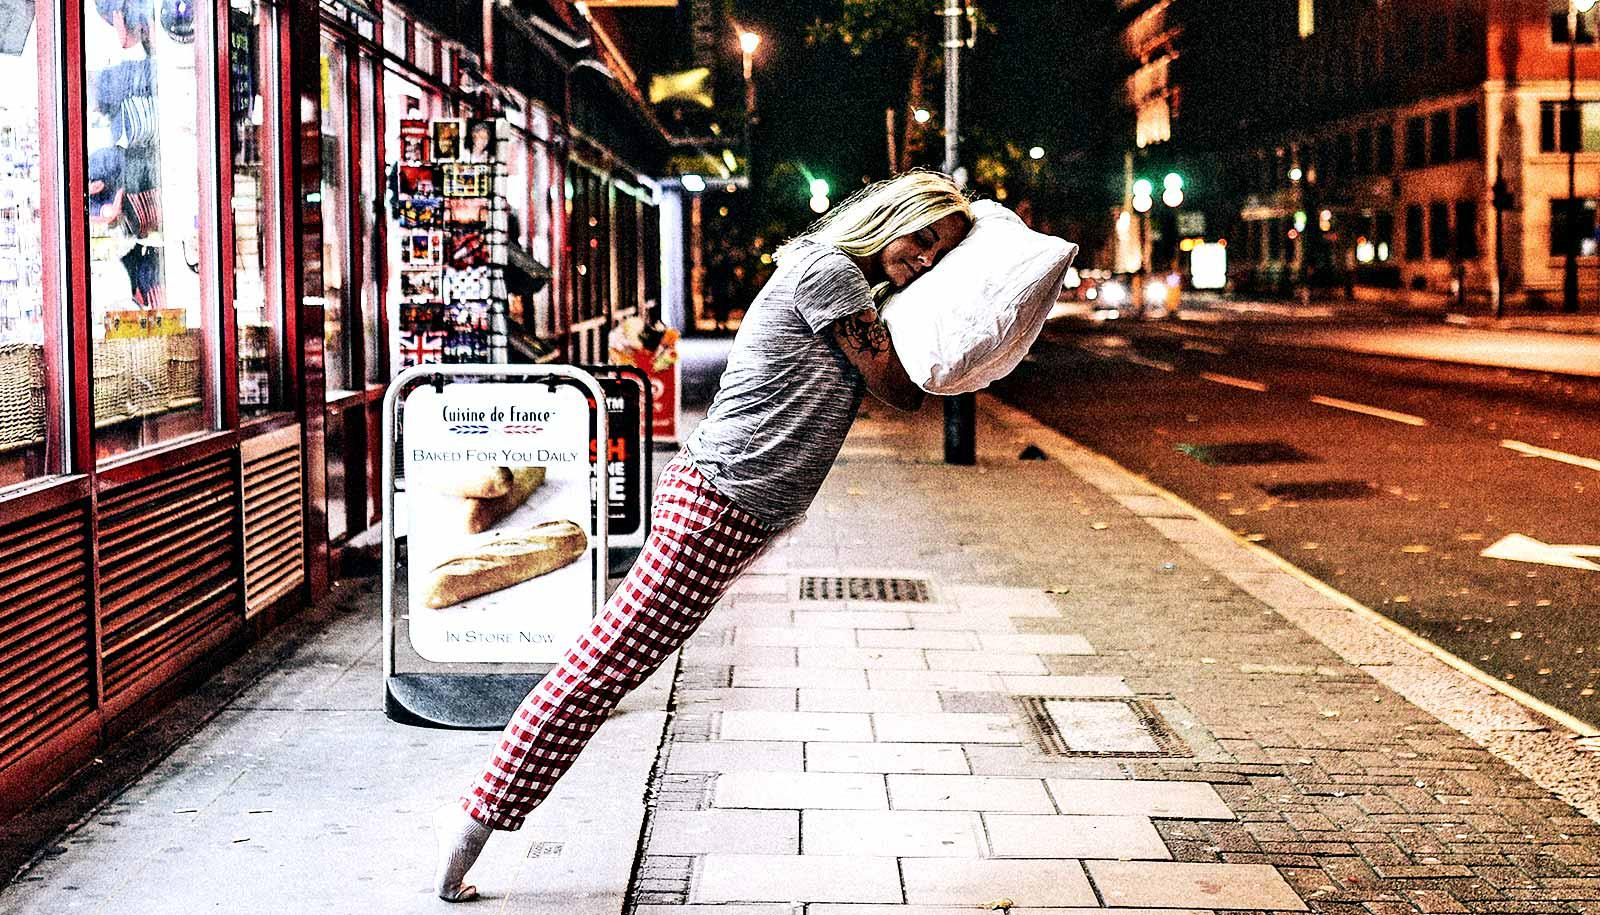 A woman leans on a floating pillow on a sitting street, almost levitating